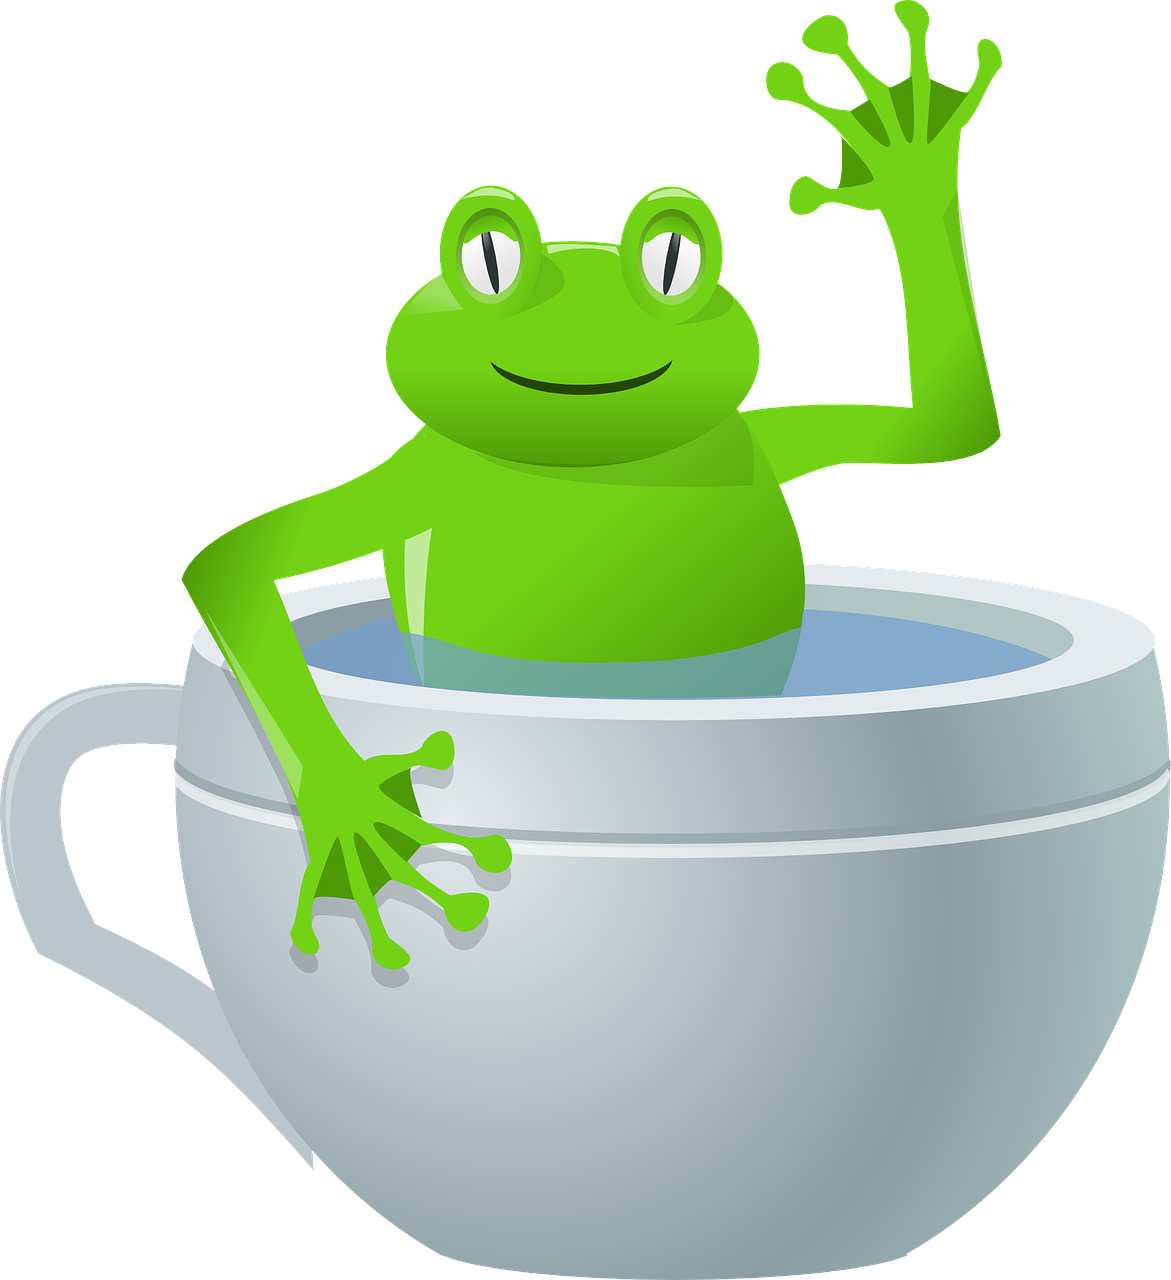 Tired clipart frog. Smile and wave naked